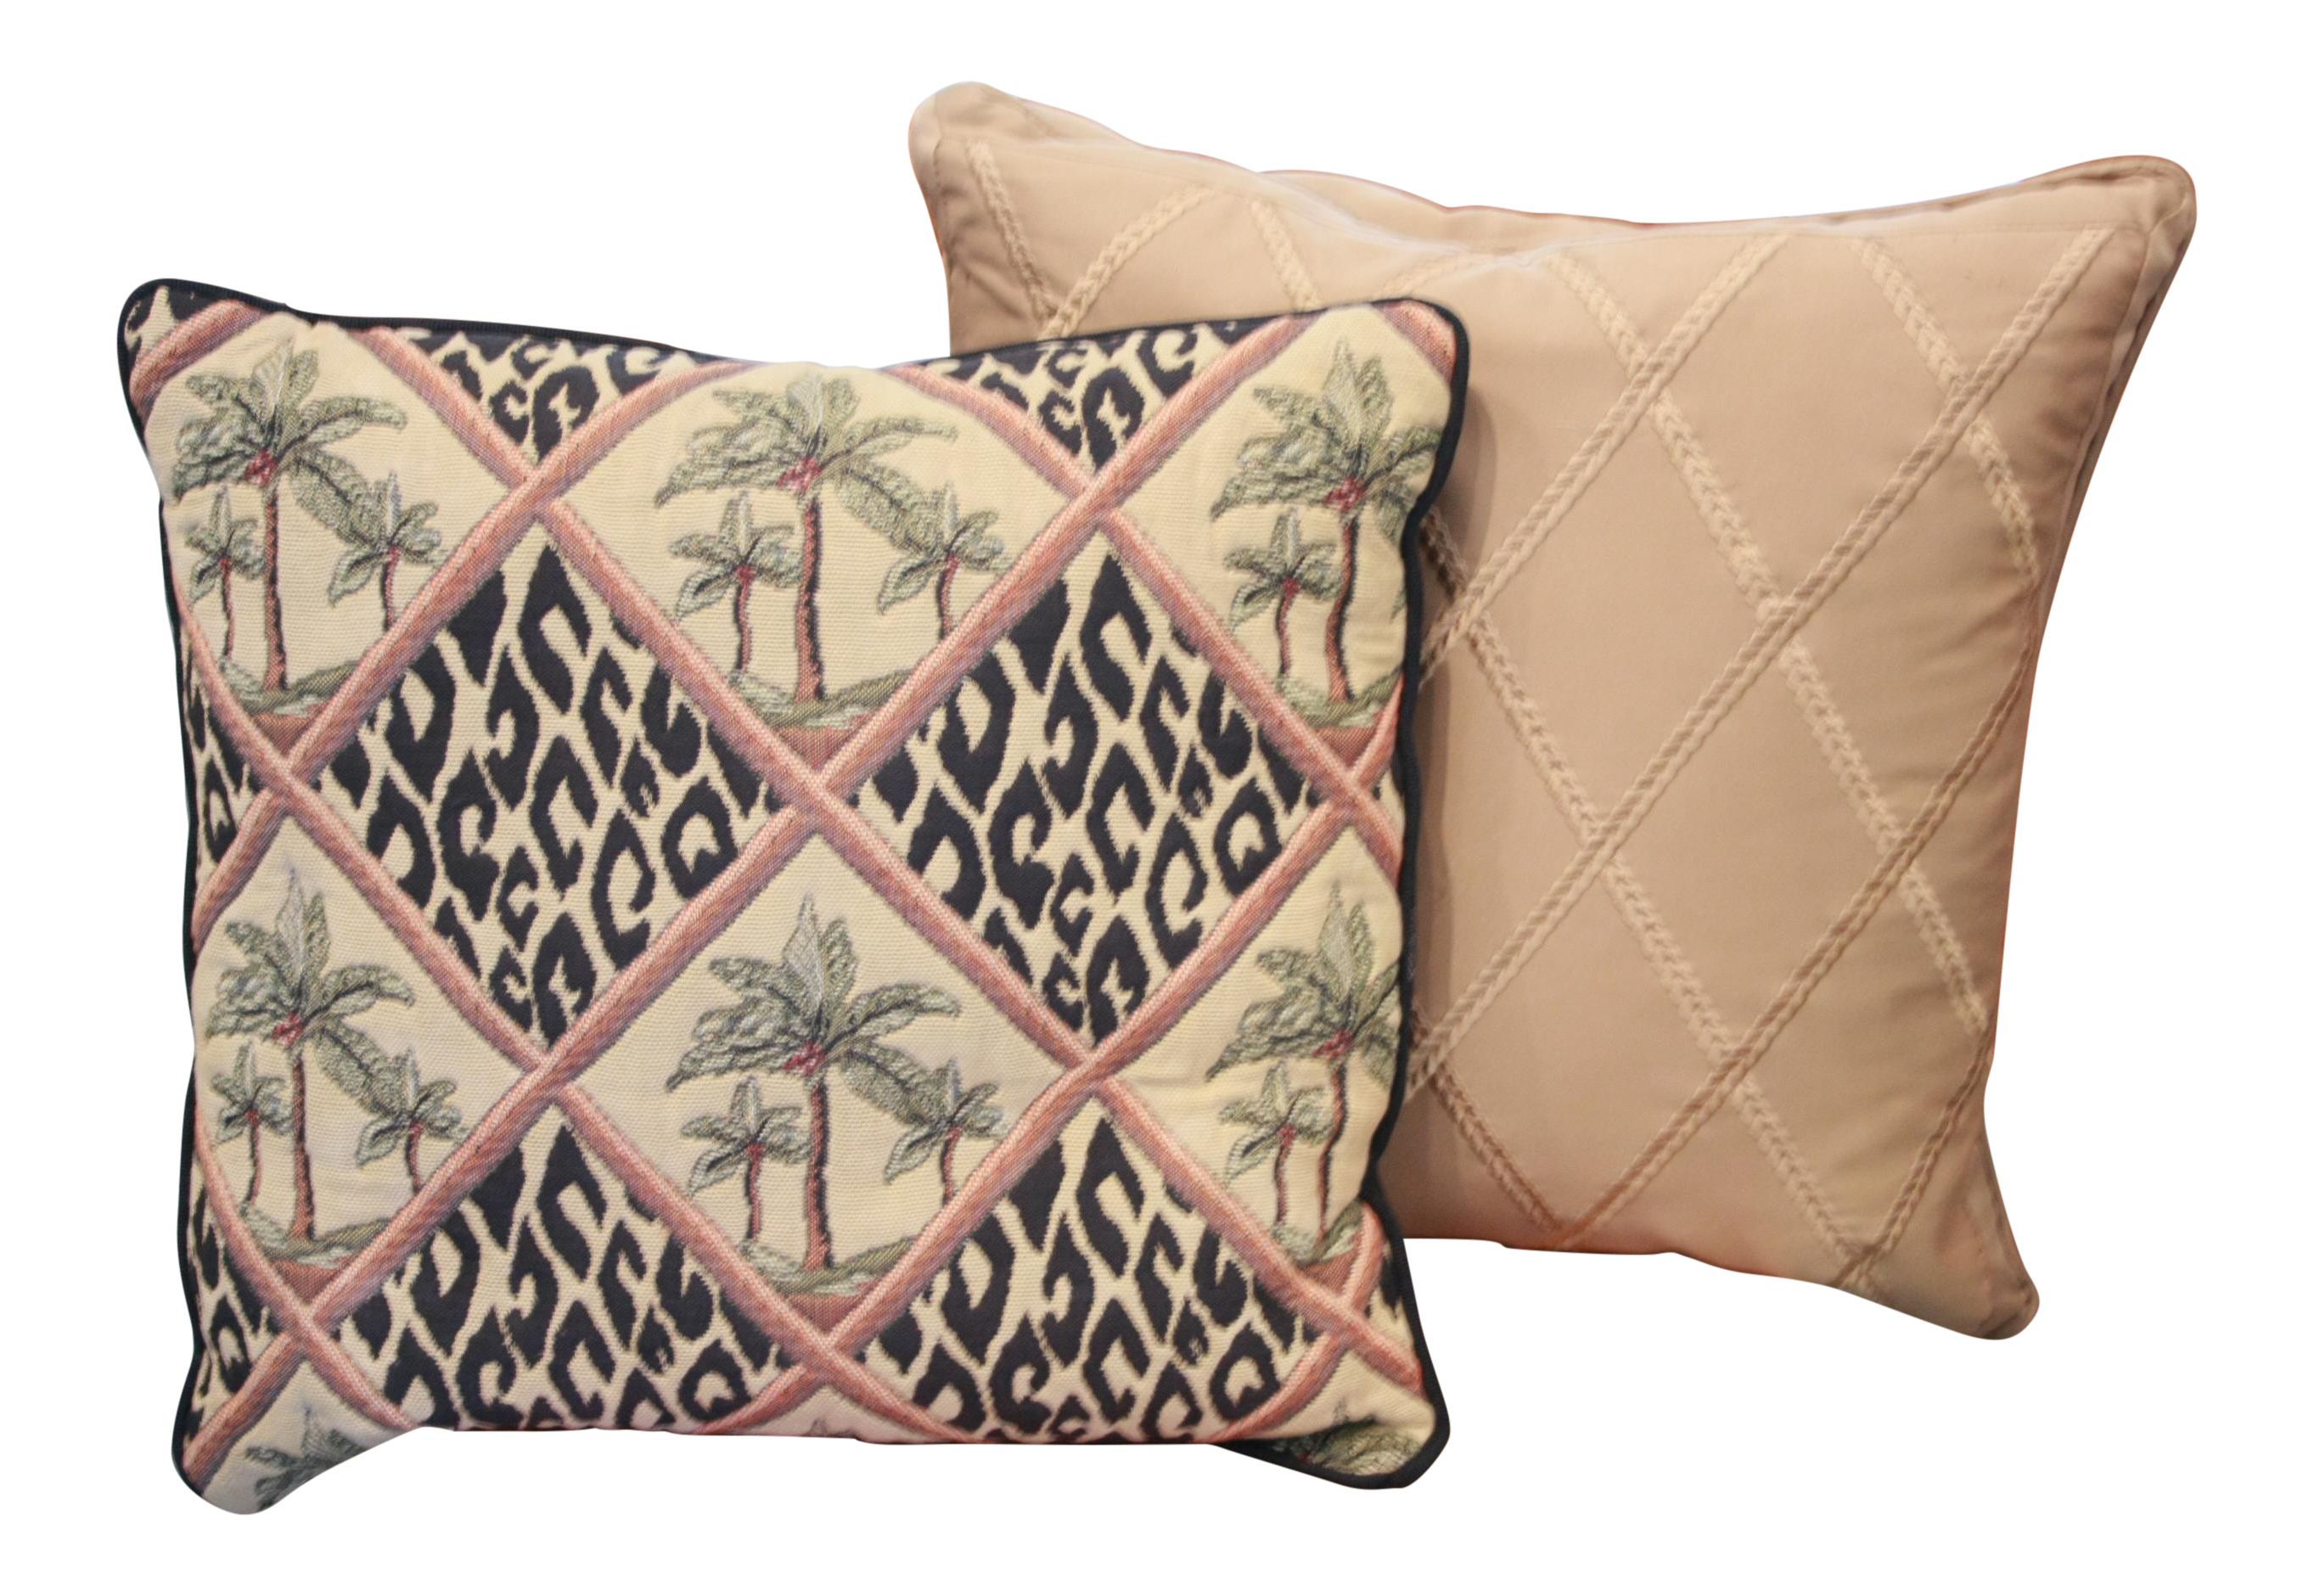 Animal Print Needlepoint Pillows : Animal Print Palm Trees Pillows - a Pair Chairish